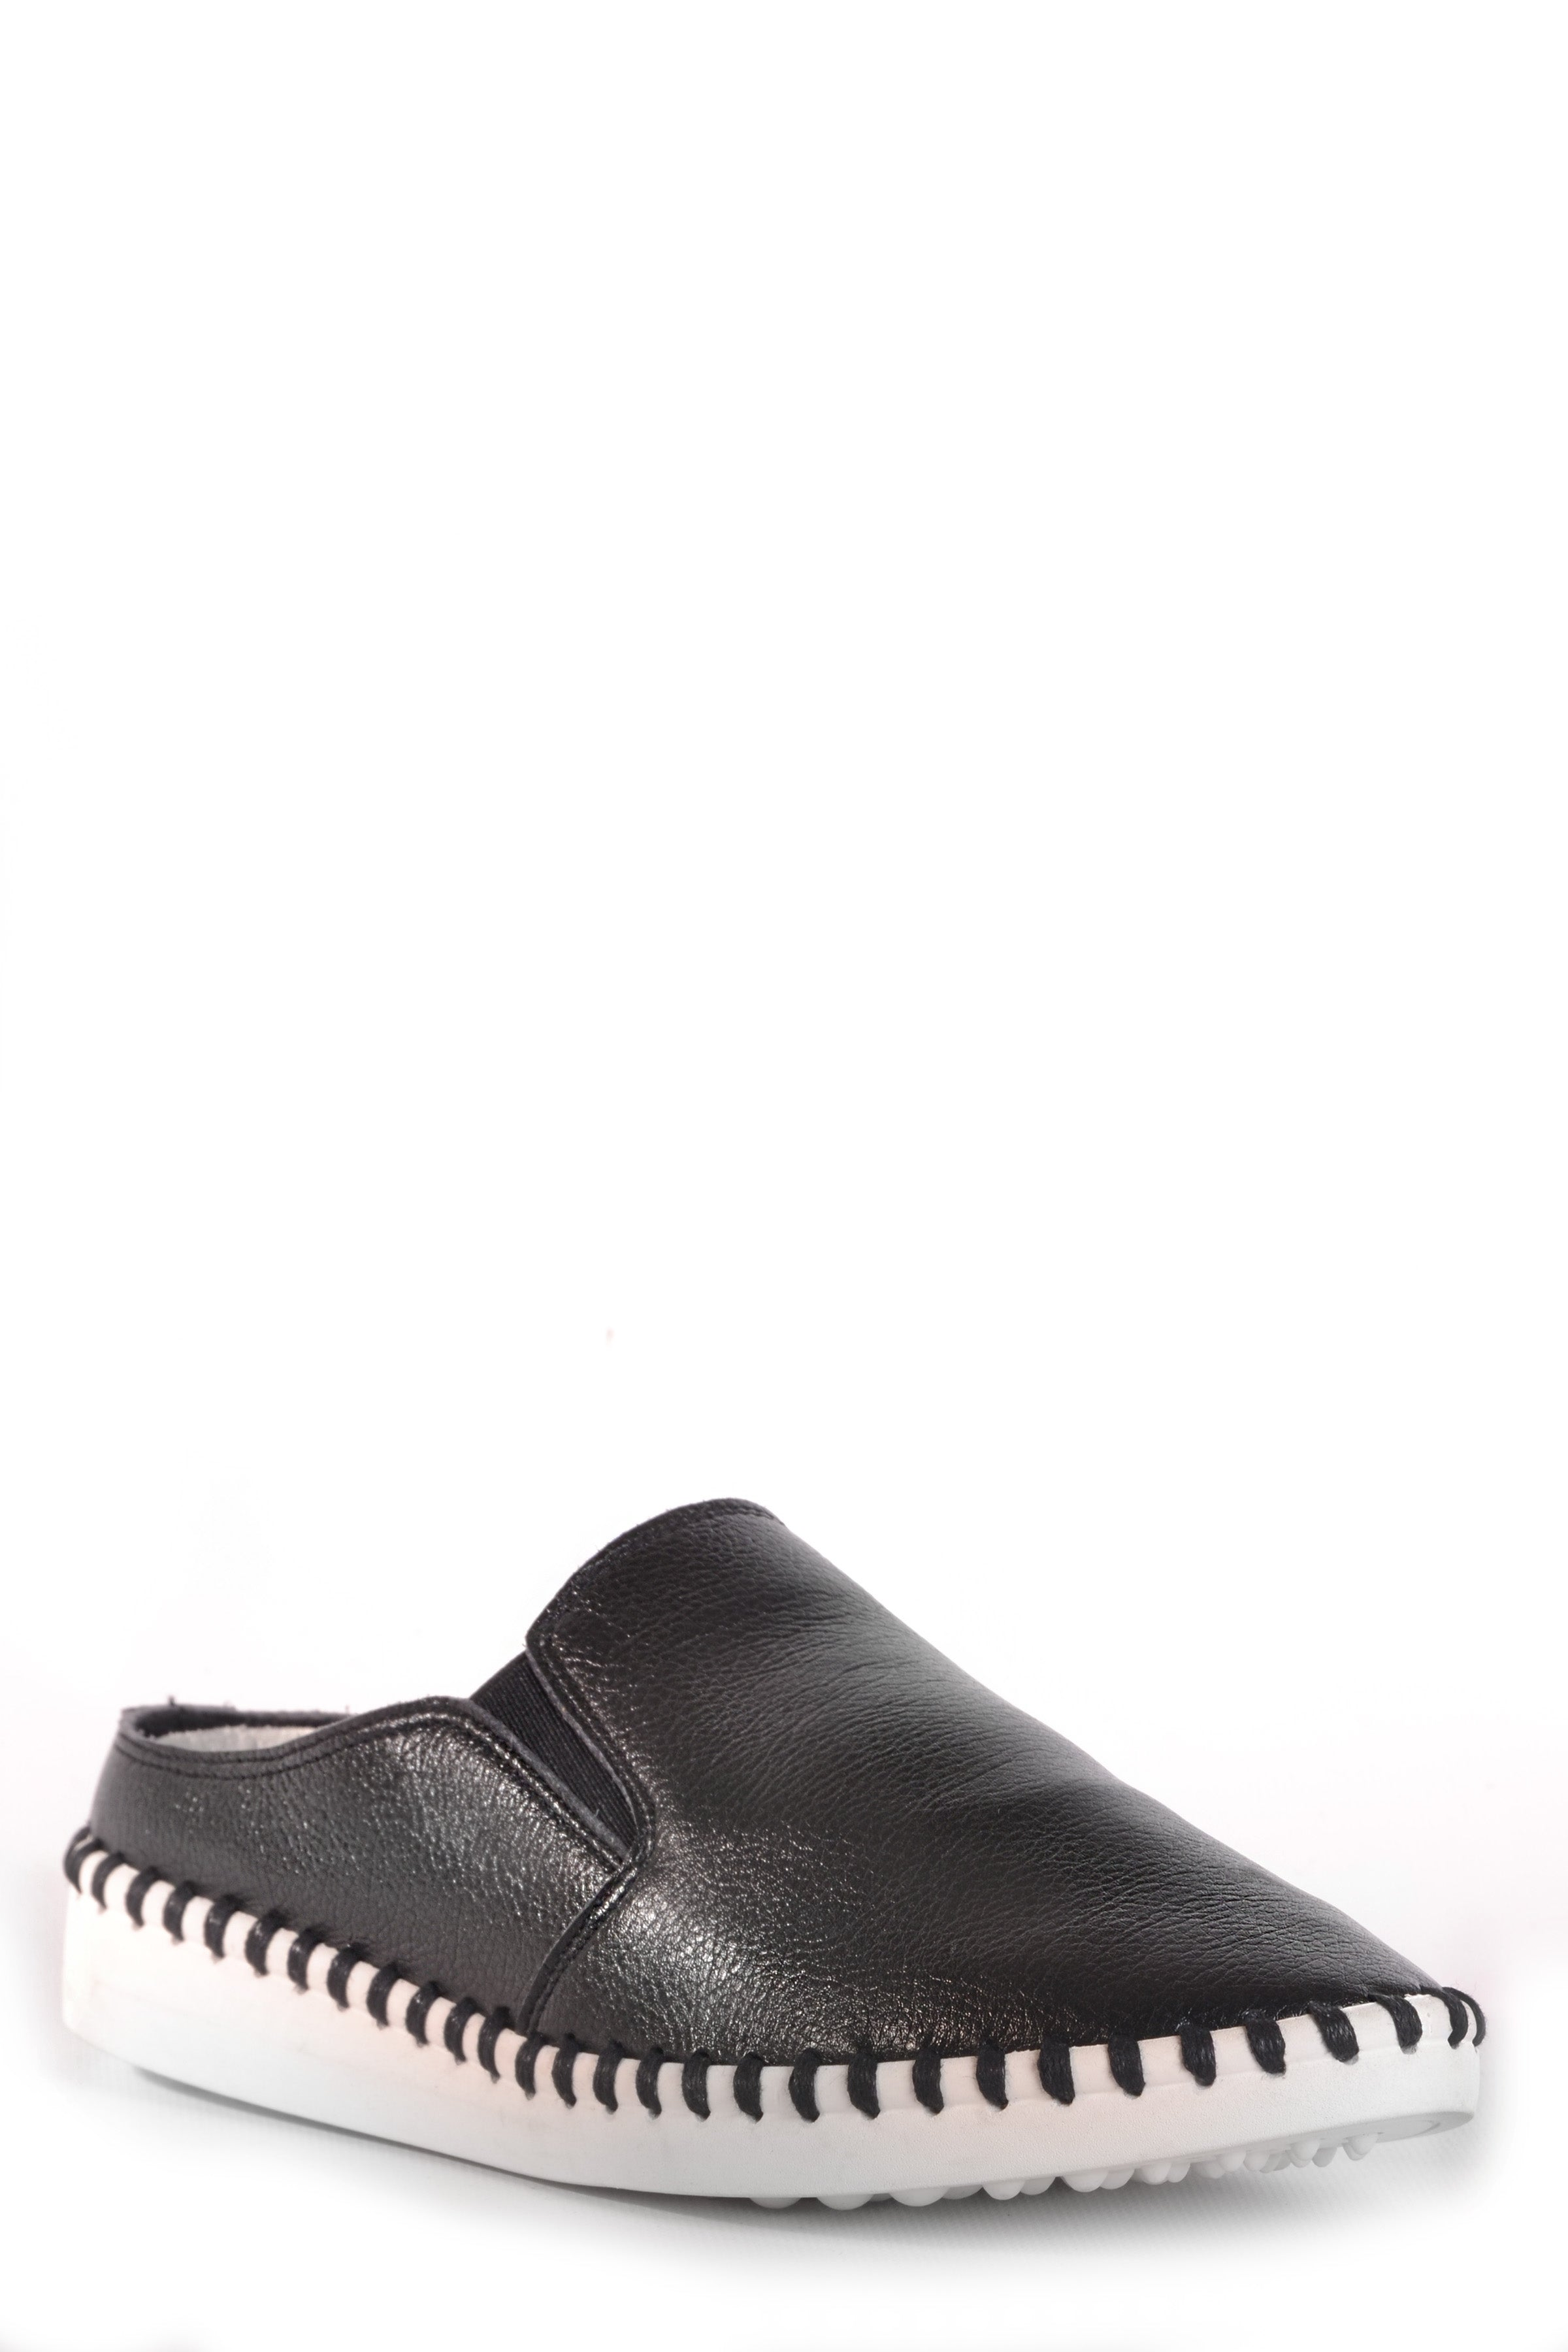 SALINAS SLIDE FAUX LEATHER BLACK